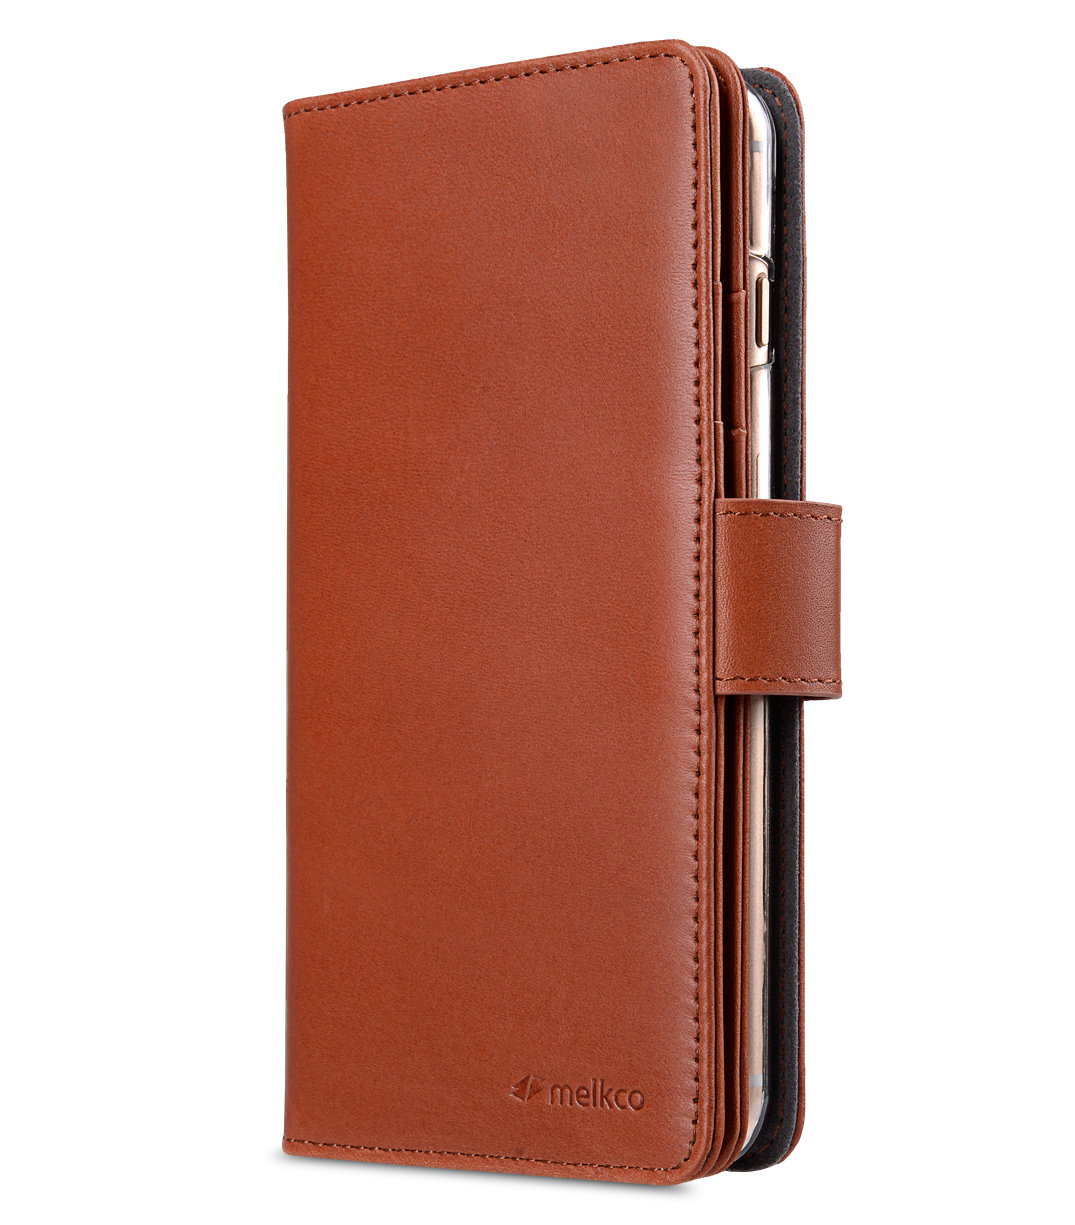 "Melkco Premium Leather Case for Apple iPhone 7 / 8 Plus(5.5"") - Wallet Plus Book Type (Orange Brown)"